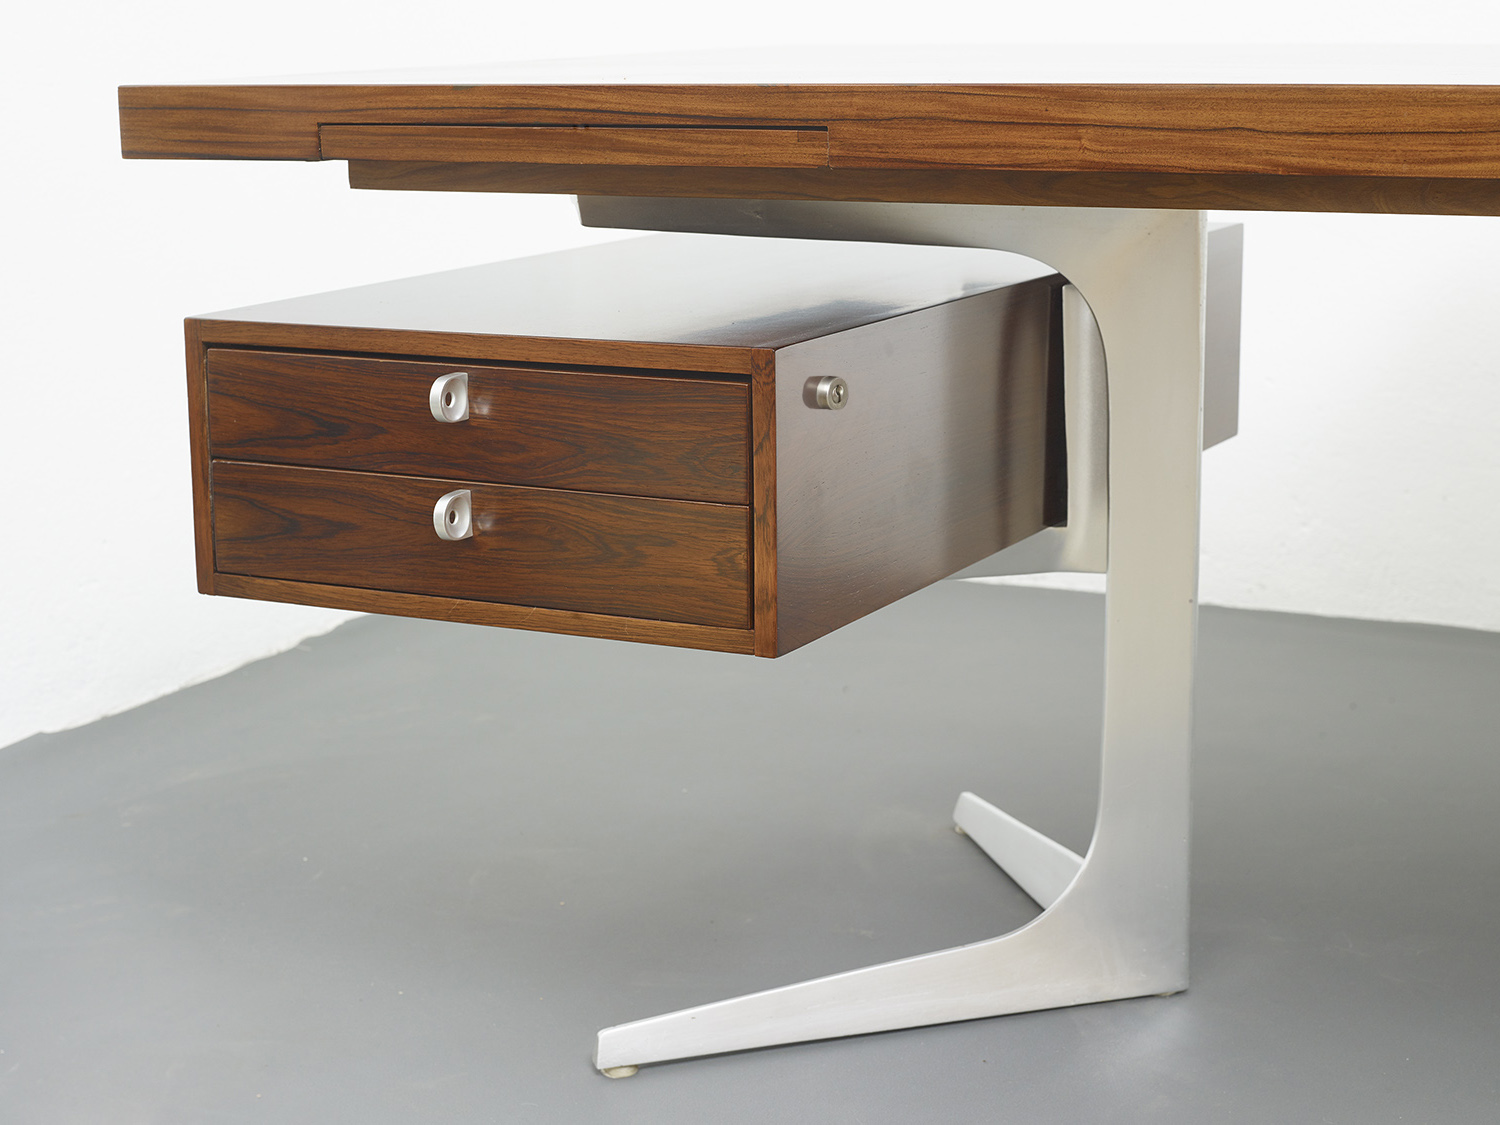 herbert-hirche-executive-rosewood-desk-image-08